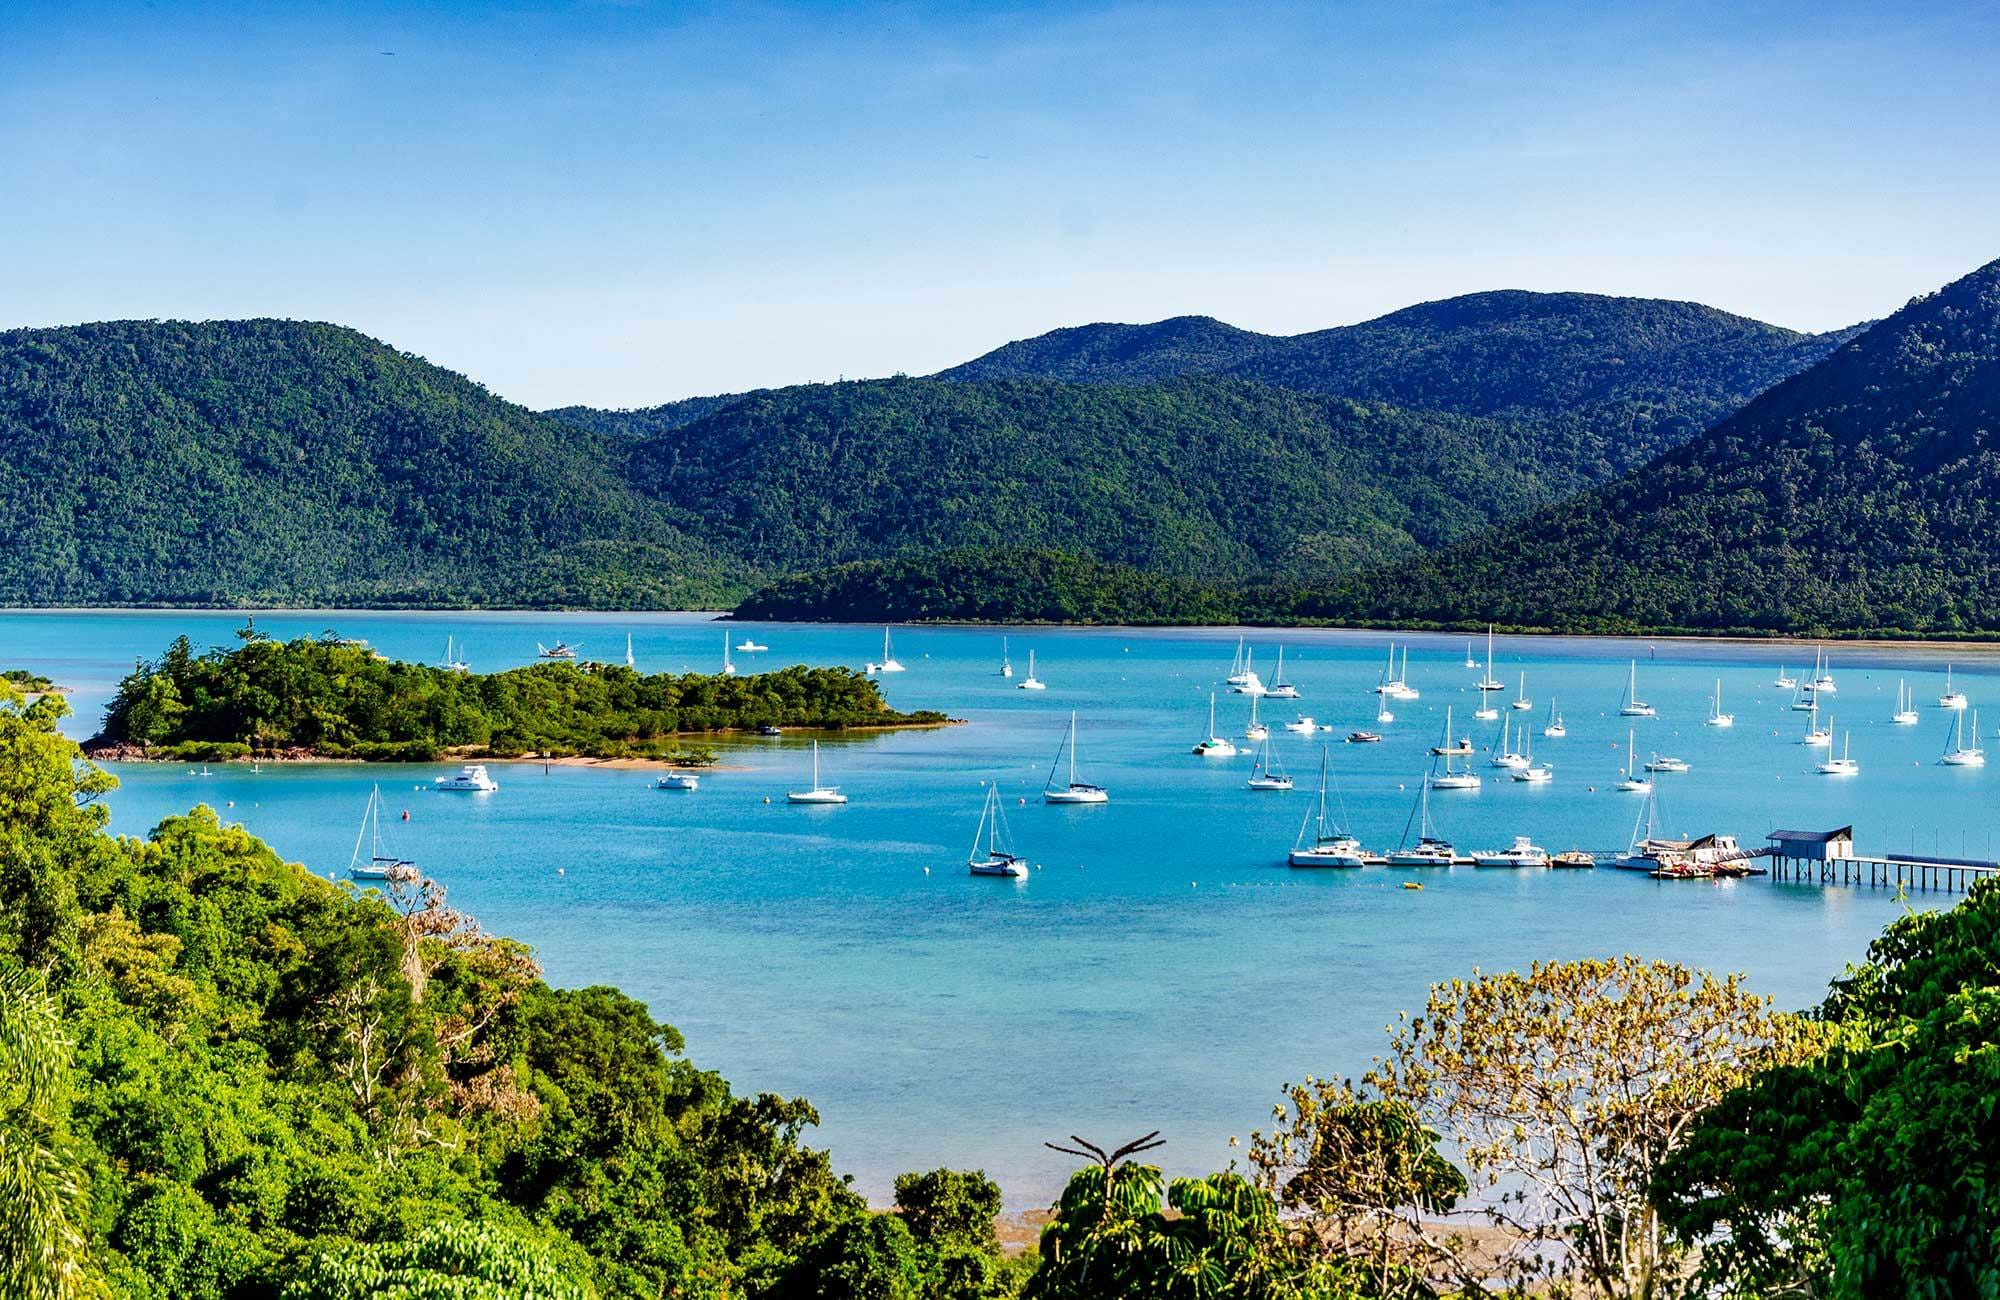 comway national park och shute harbor i whitsundays, australien